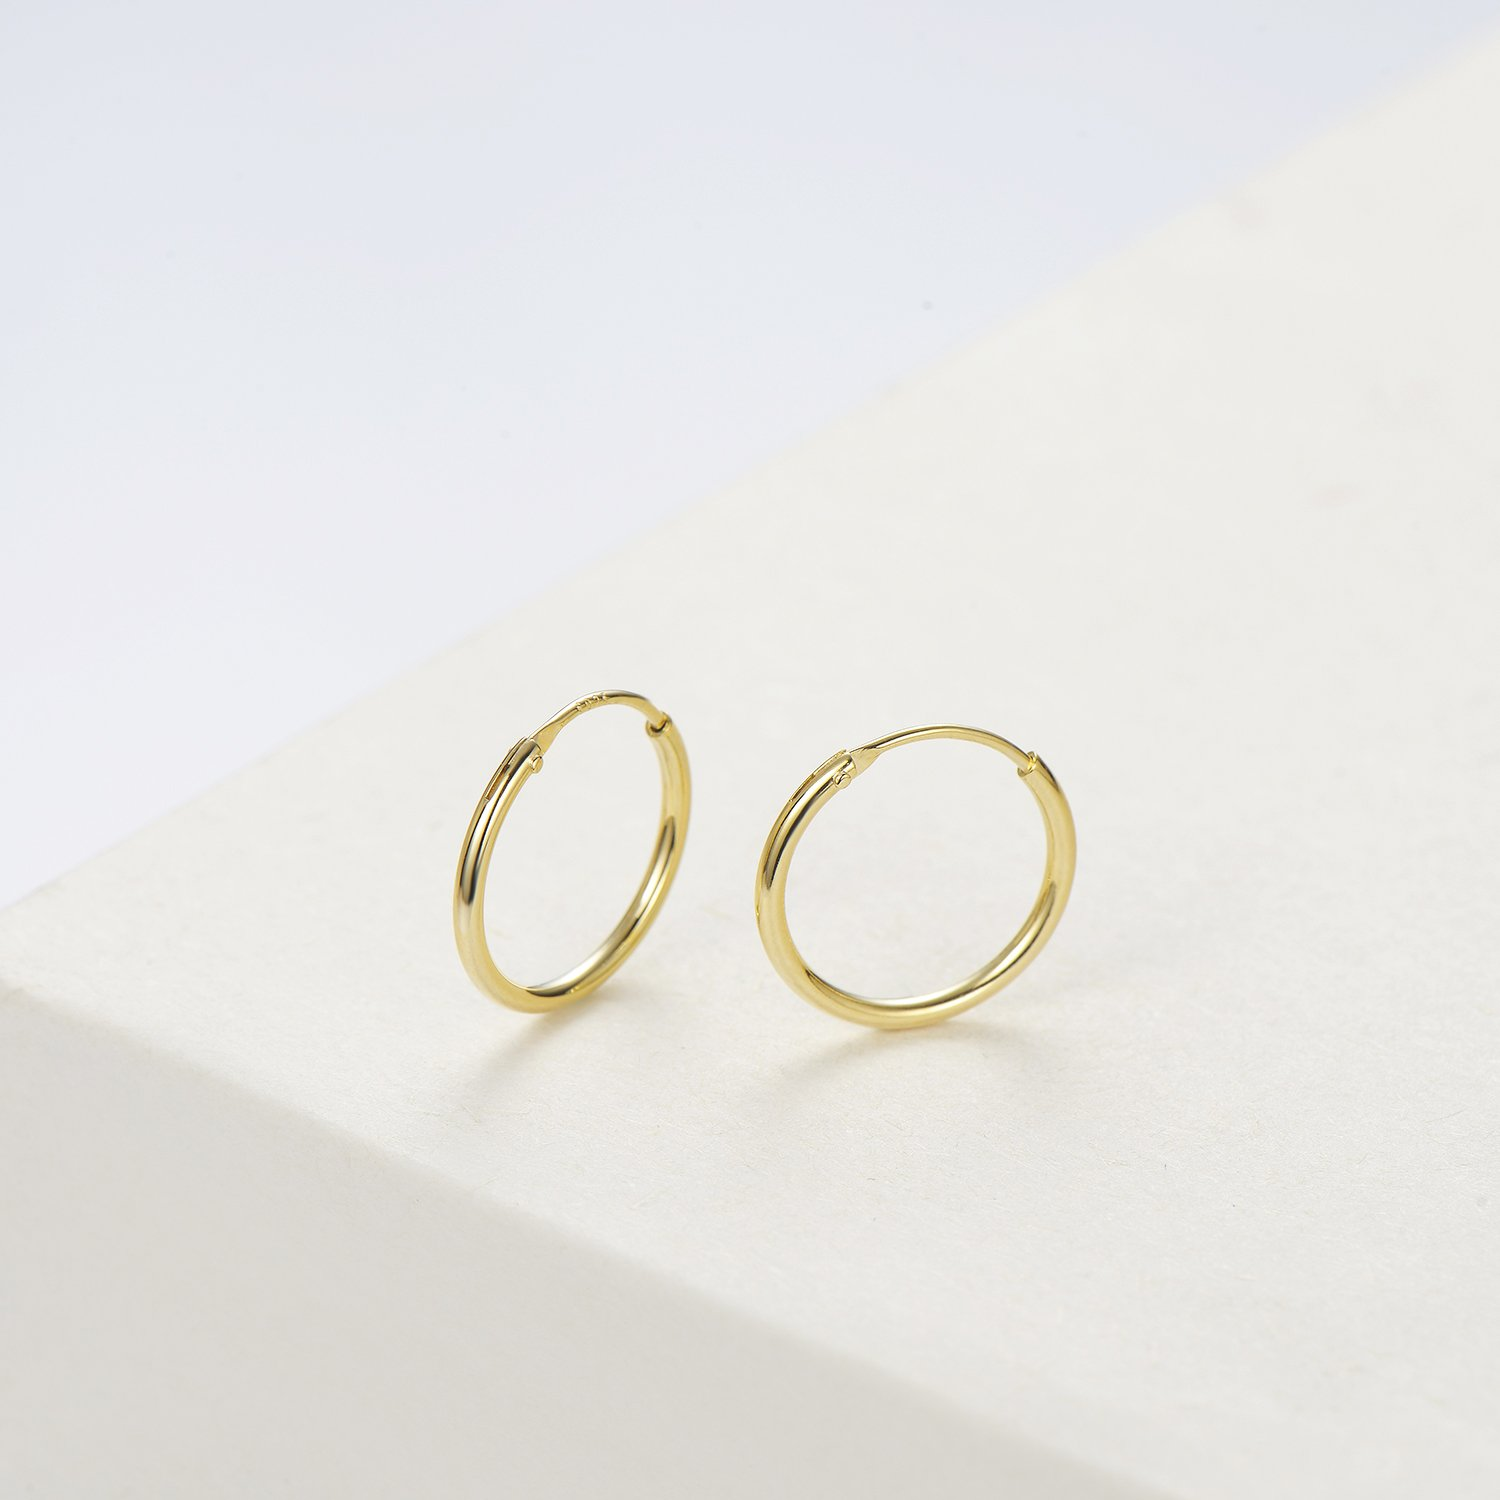 Carleen 14K Yellow Gold Plated 925 Sterling Silver Dainty Endless Hoop Earrings for Women Girls (13mm) by Carleen (Image #1)